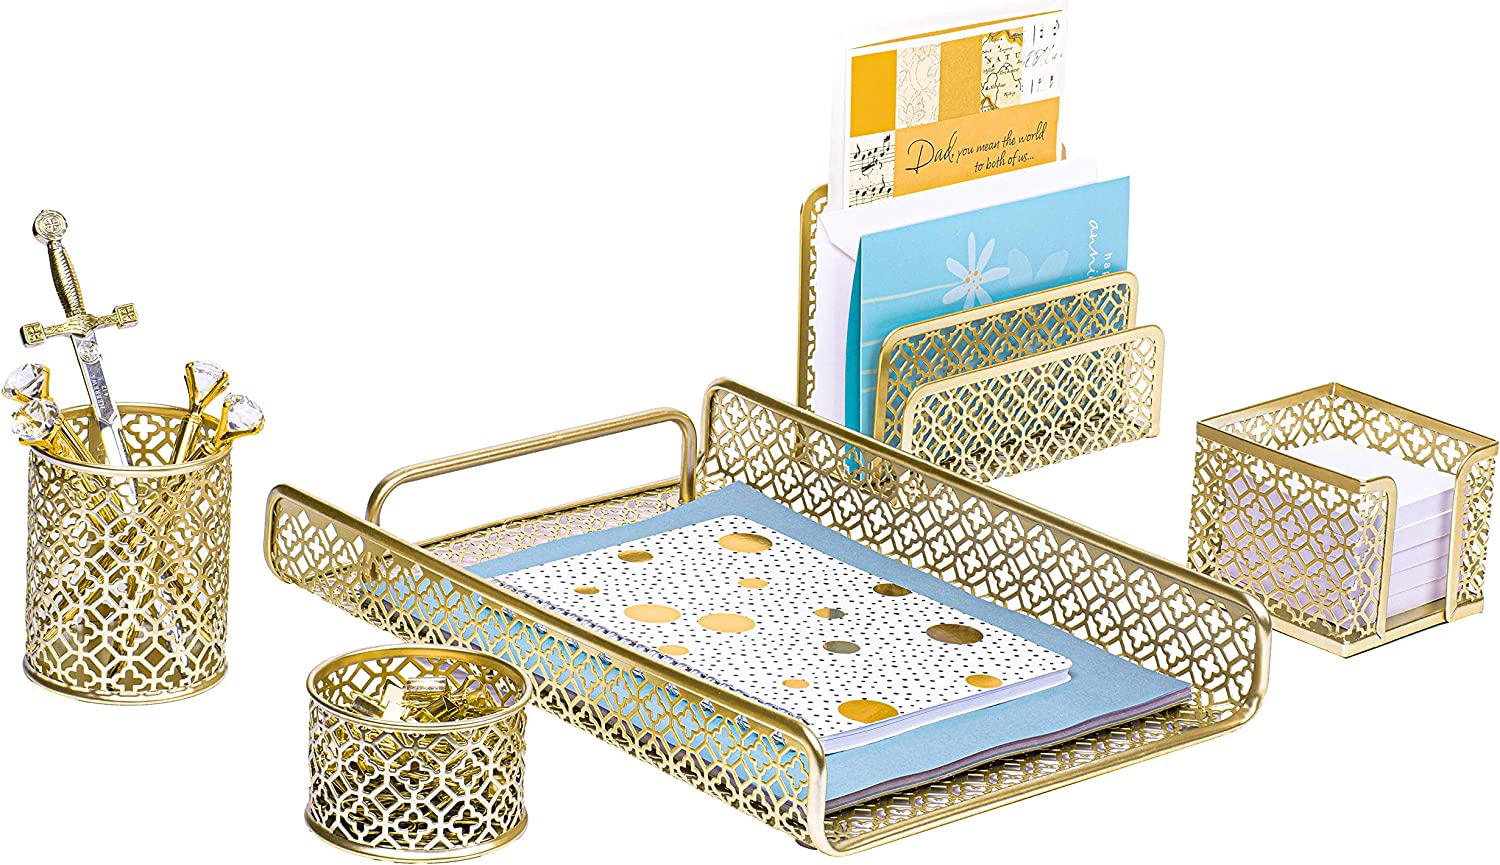 Gold Desk Organizer Set Metal 5 Piece for Office Decor. Great for Office Desk, Home & School. Desk Decor Designed for your Office Supplies & Desk Organization. The Perfect Desk Accessory by MissionMax